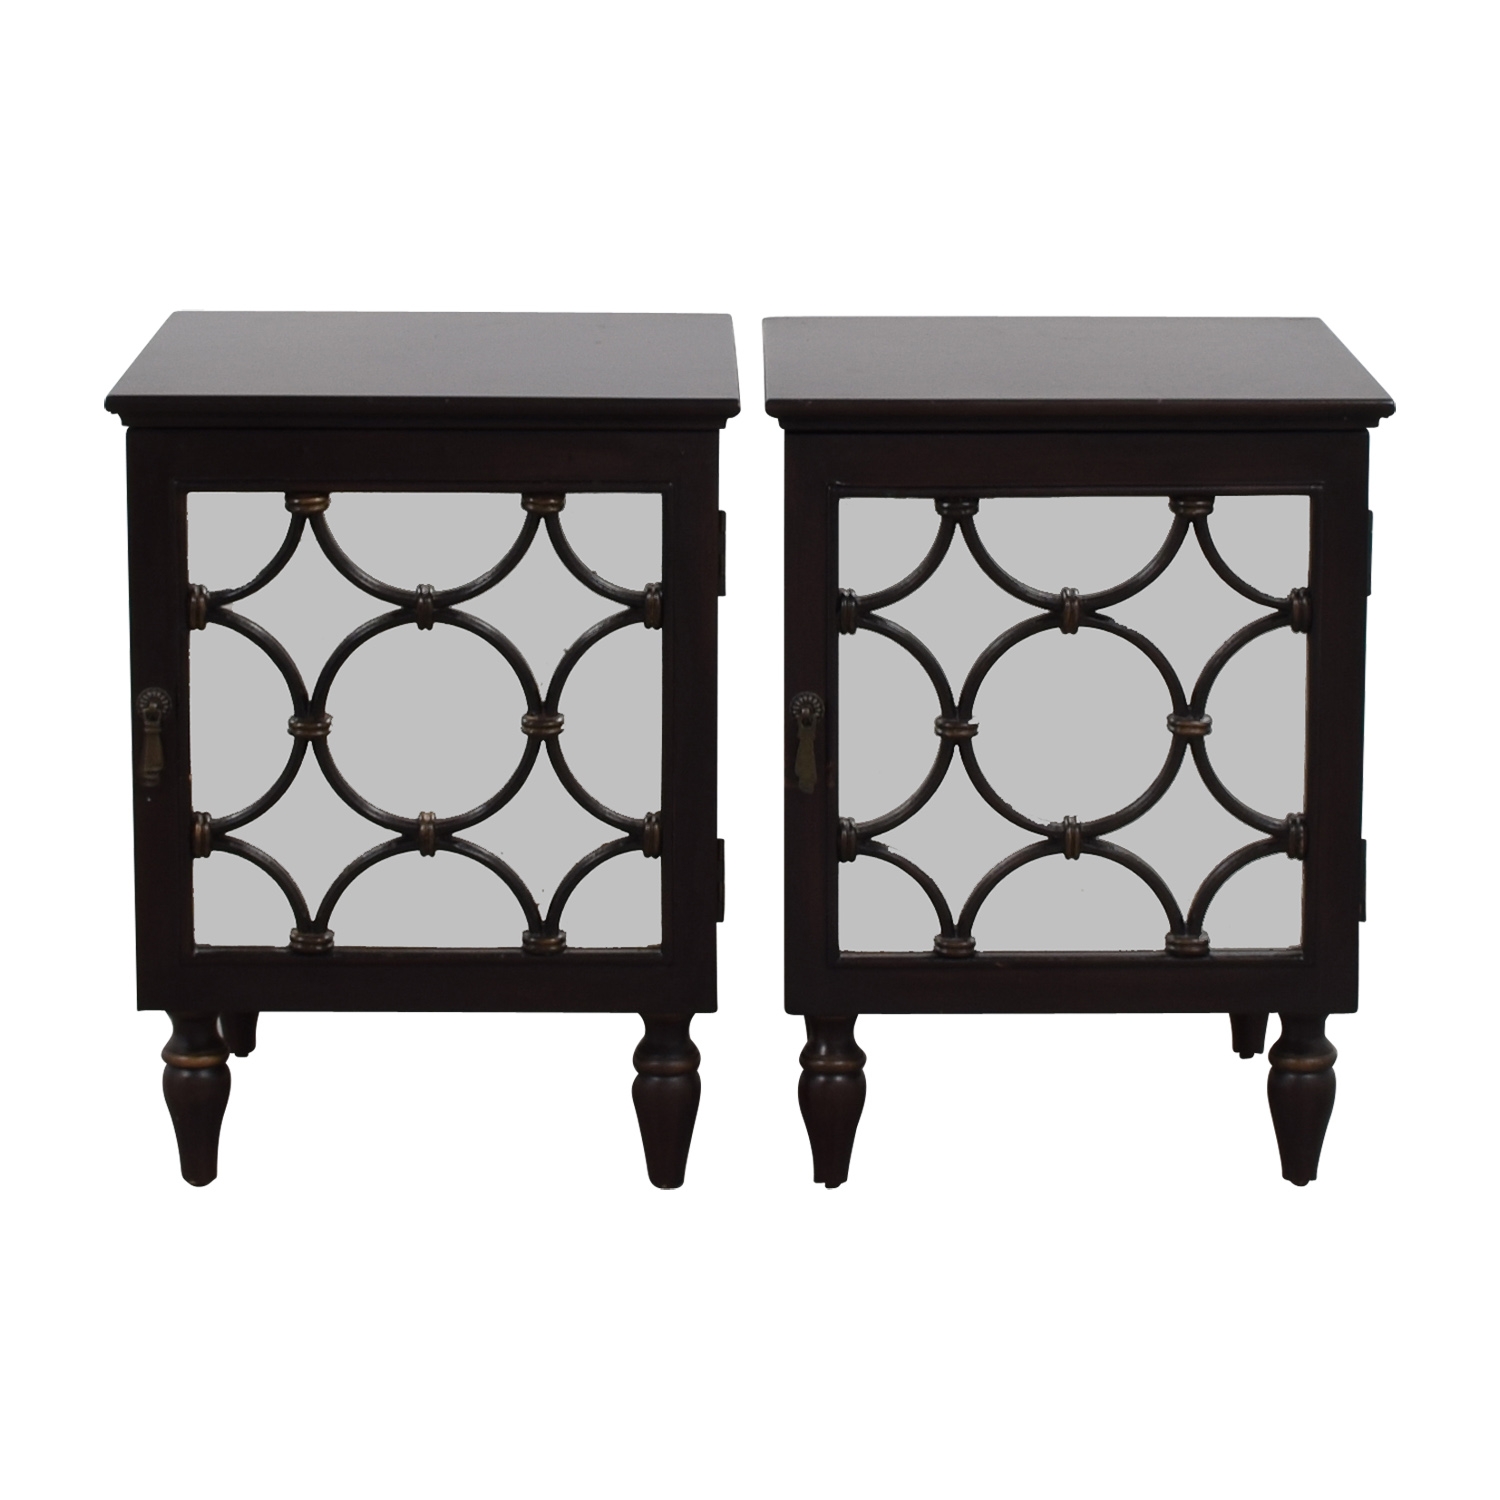 buy Pottery Barn Mirrored Side Tables Pottery Barn Sofas